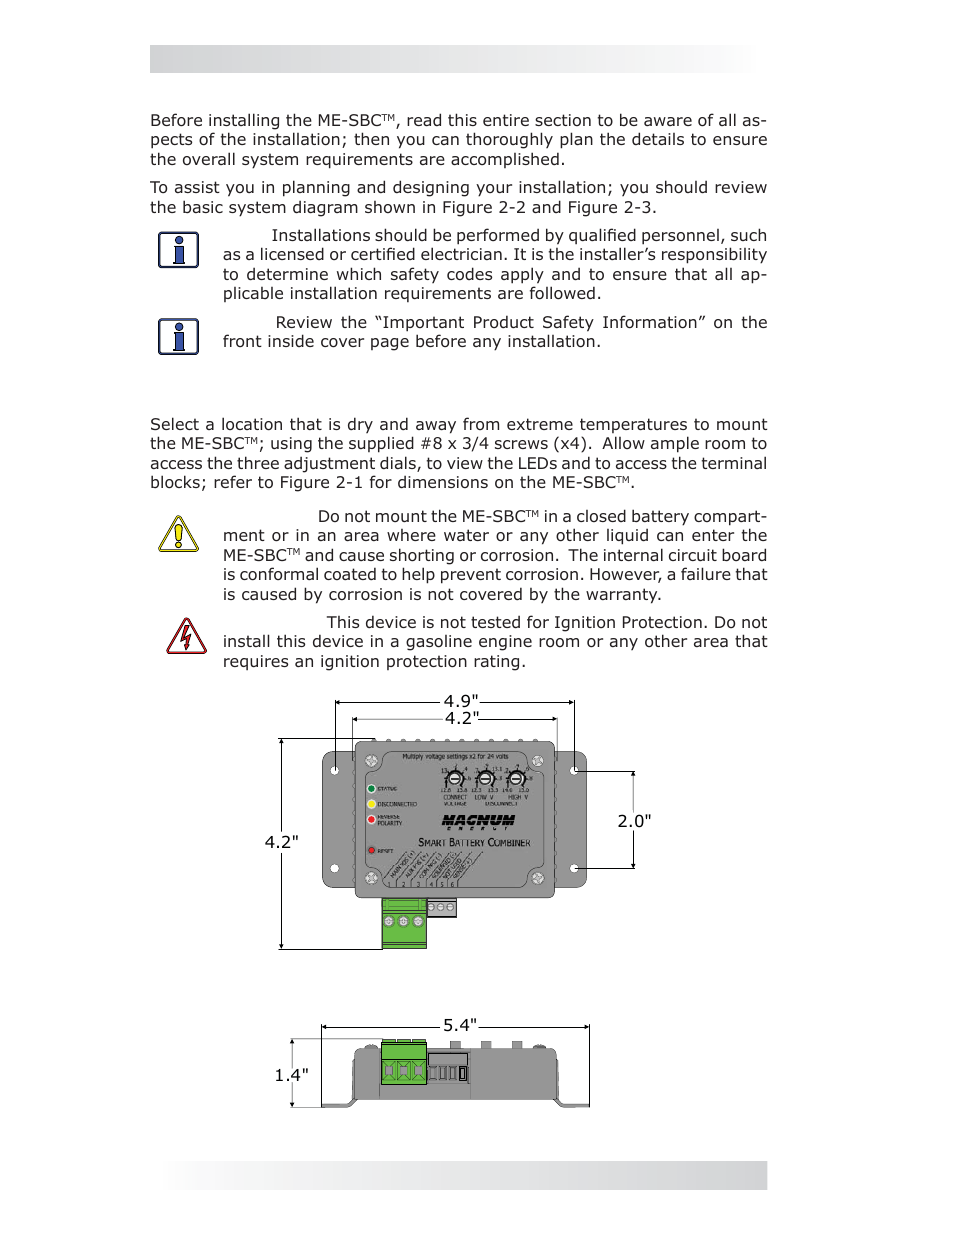 Installation, 0 installation, 2 location and mounting ... Magnum Smart Battery Combiner Wiring Diagram on